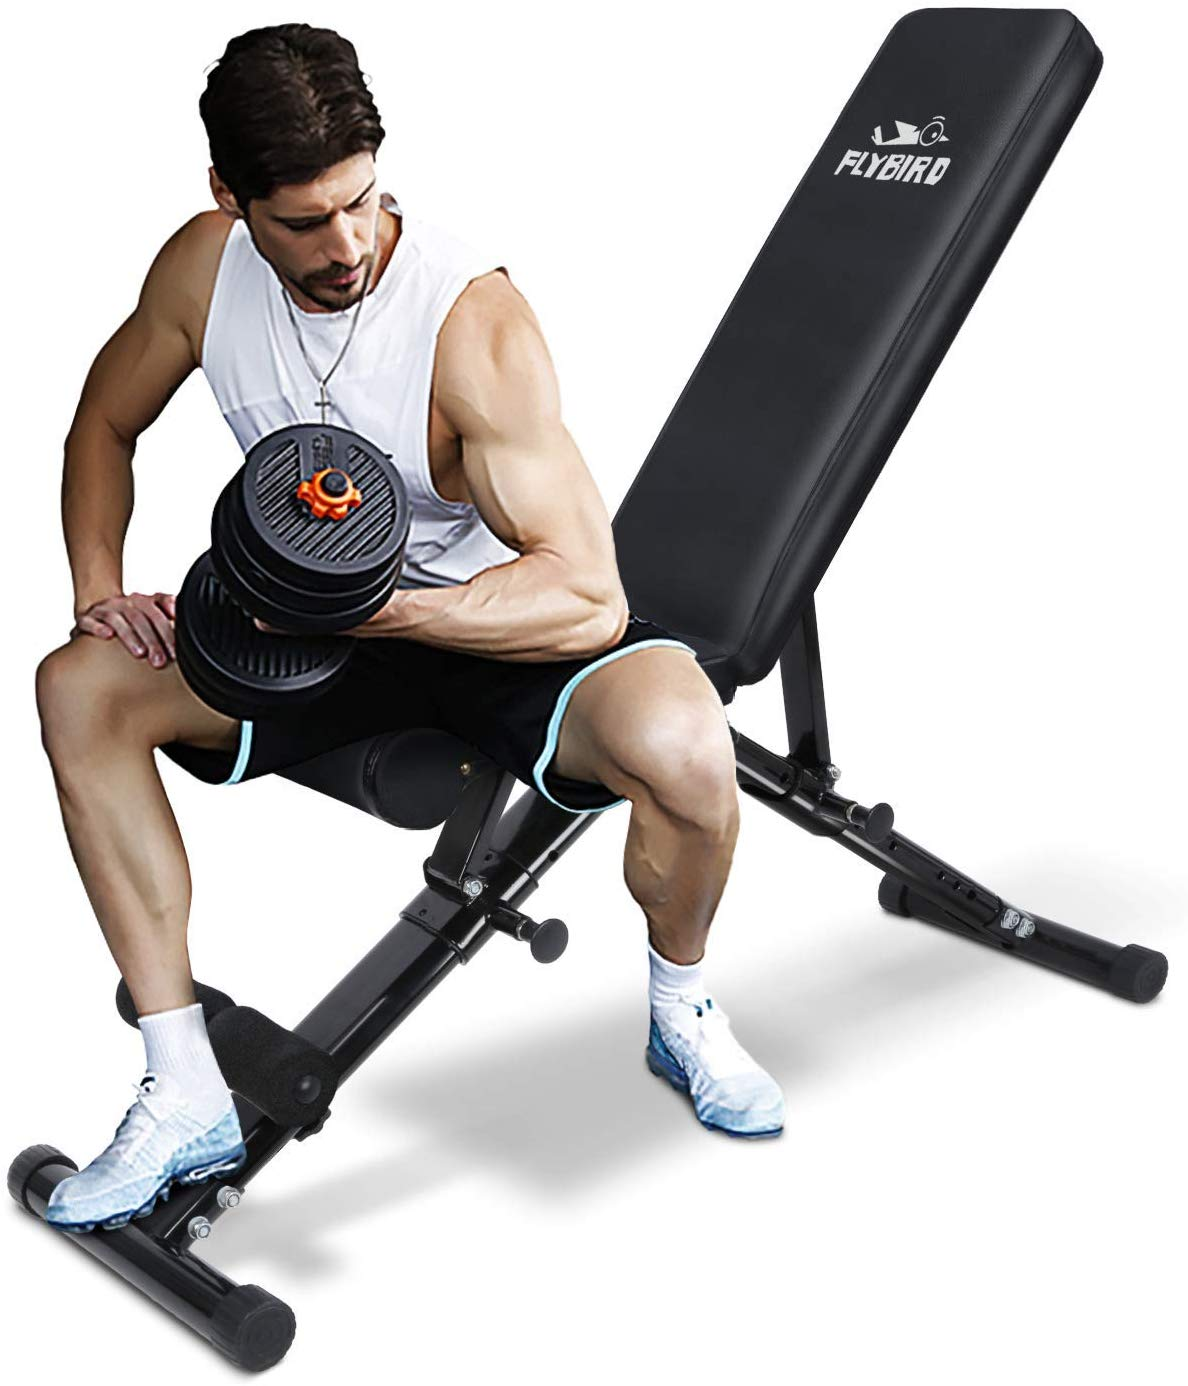 flybird workout bench